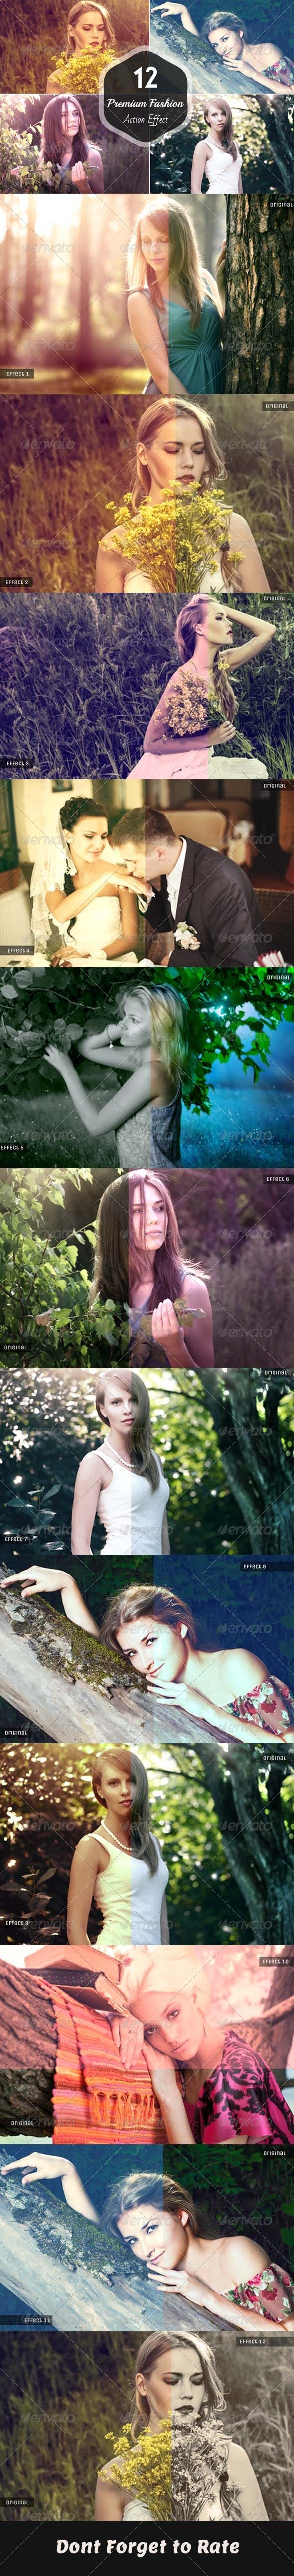 GraphicRiver 12 Premium Fashion Photoshop Action 7796094